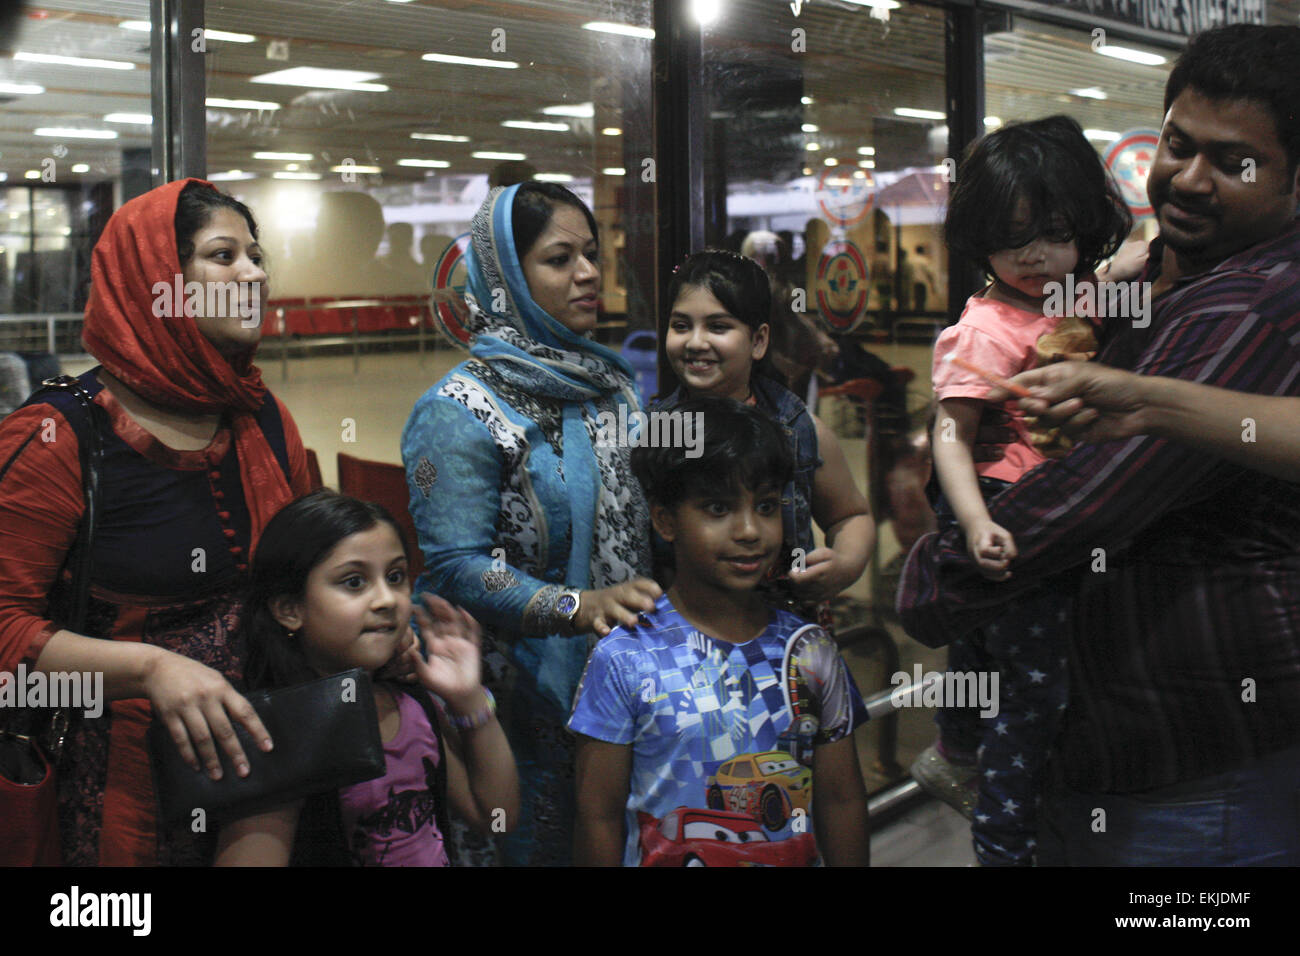 Dhaka, Bangladesh. 10th Apr, 2015. Bangladeshi woman Elora Zahan (left) along with her two child were returned Bangladesh - Stock Image